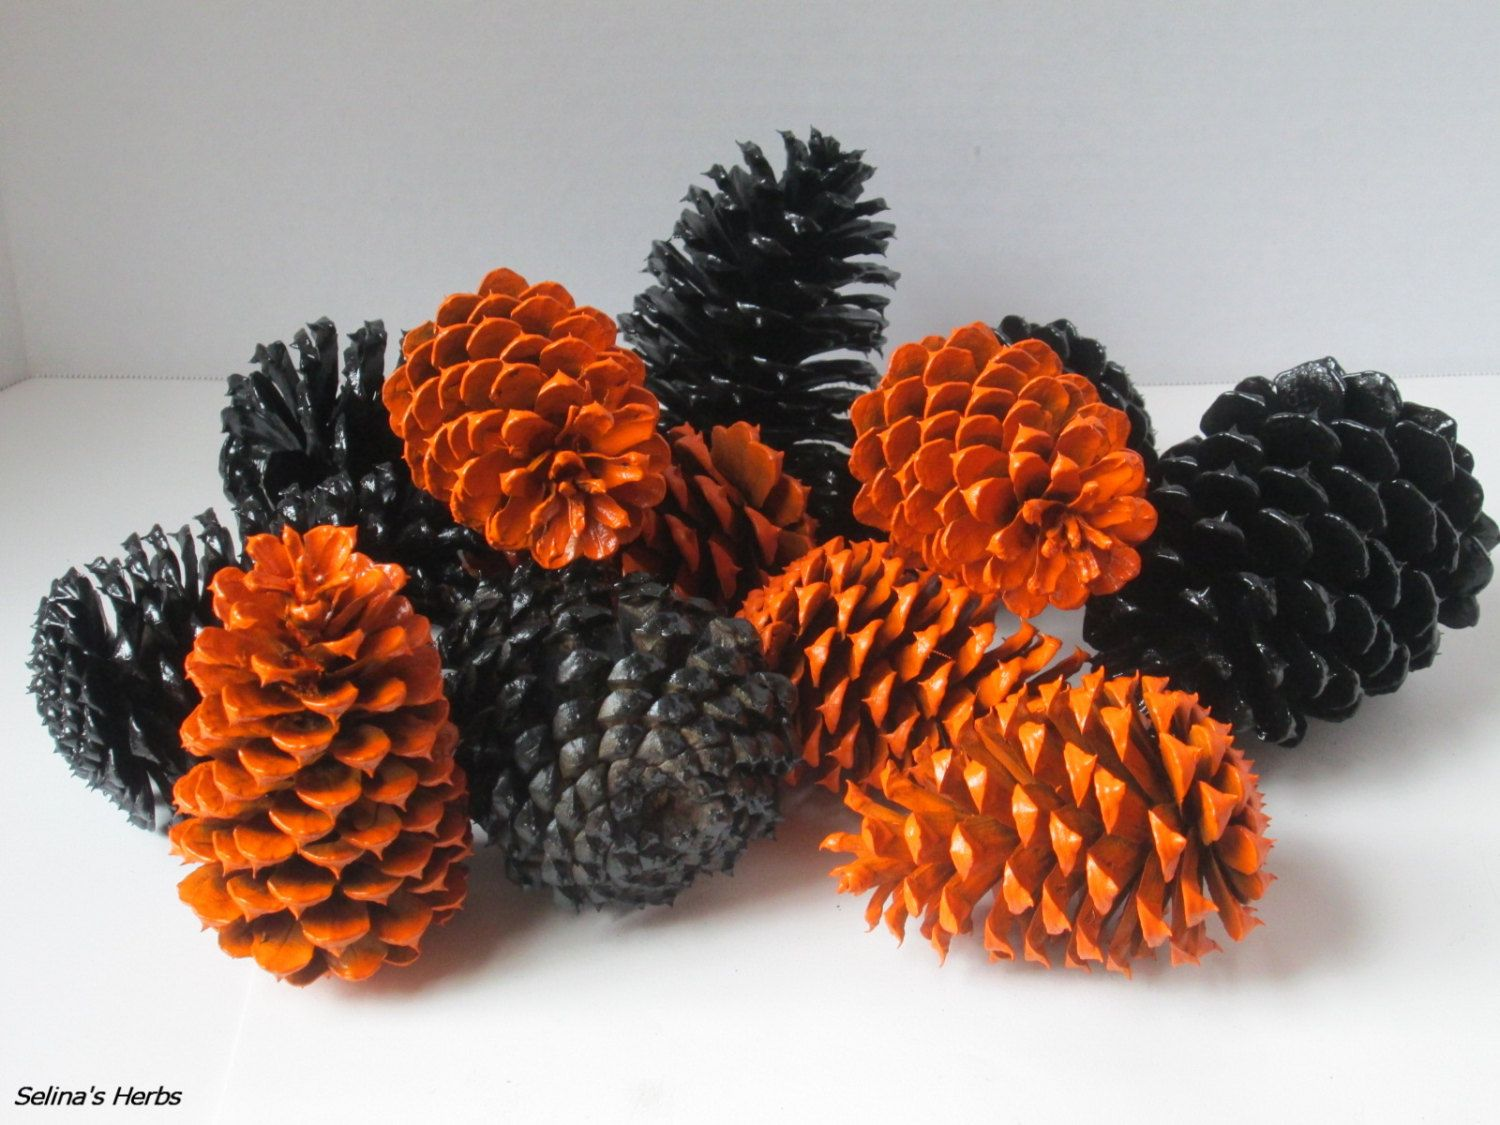 Black And Orange Pine Cone Decor For Holiday Party Etsy Fall Halloween Decor Pine Cone Decorations Halloween Floral Arrangements